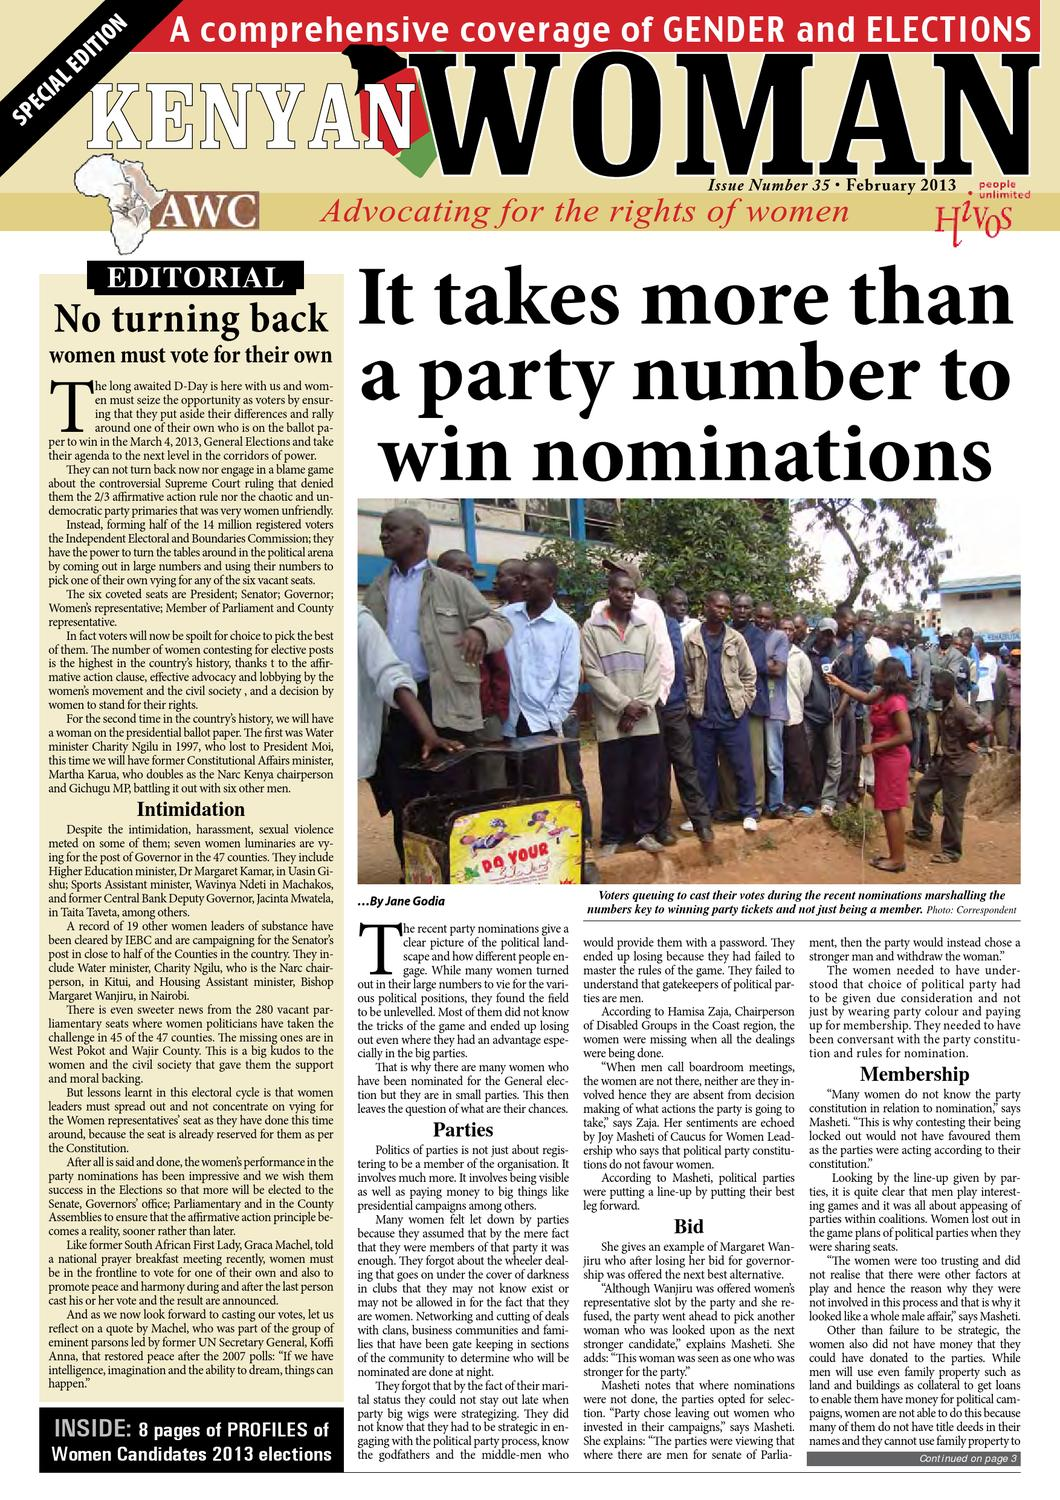 Gender & Elections special: Kenyan Woman Issue 35